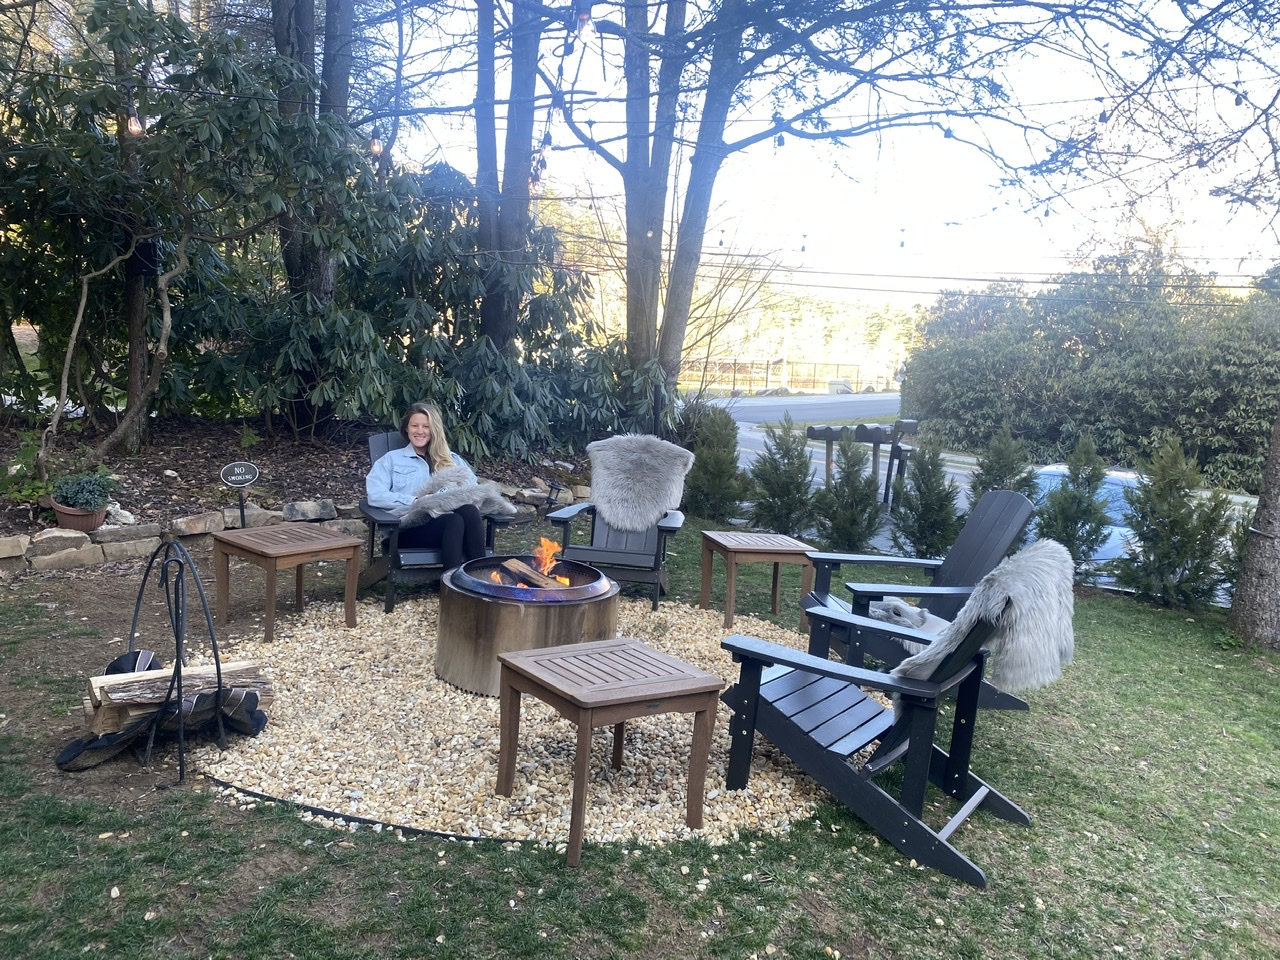 Hanging out by the Solo Stove fire pit at boutique Wells Hotel on the outskirts of town.